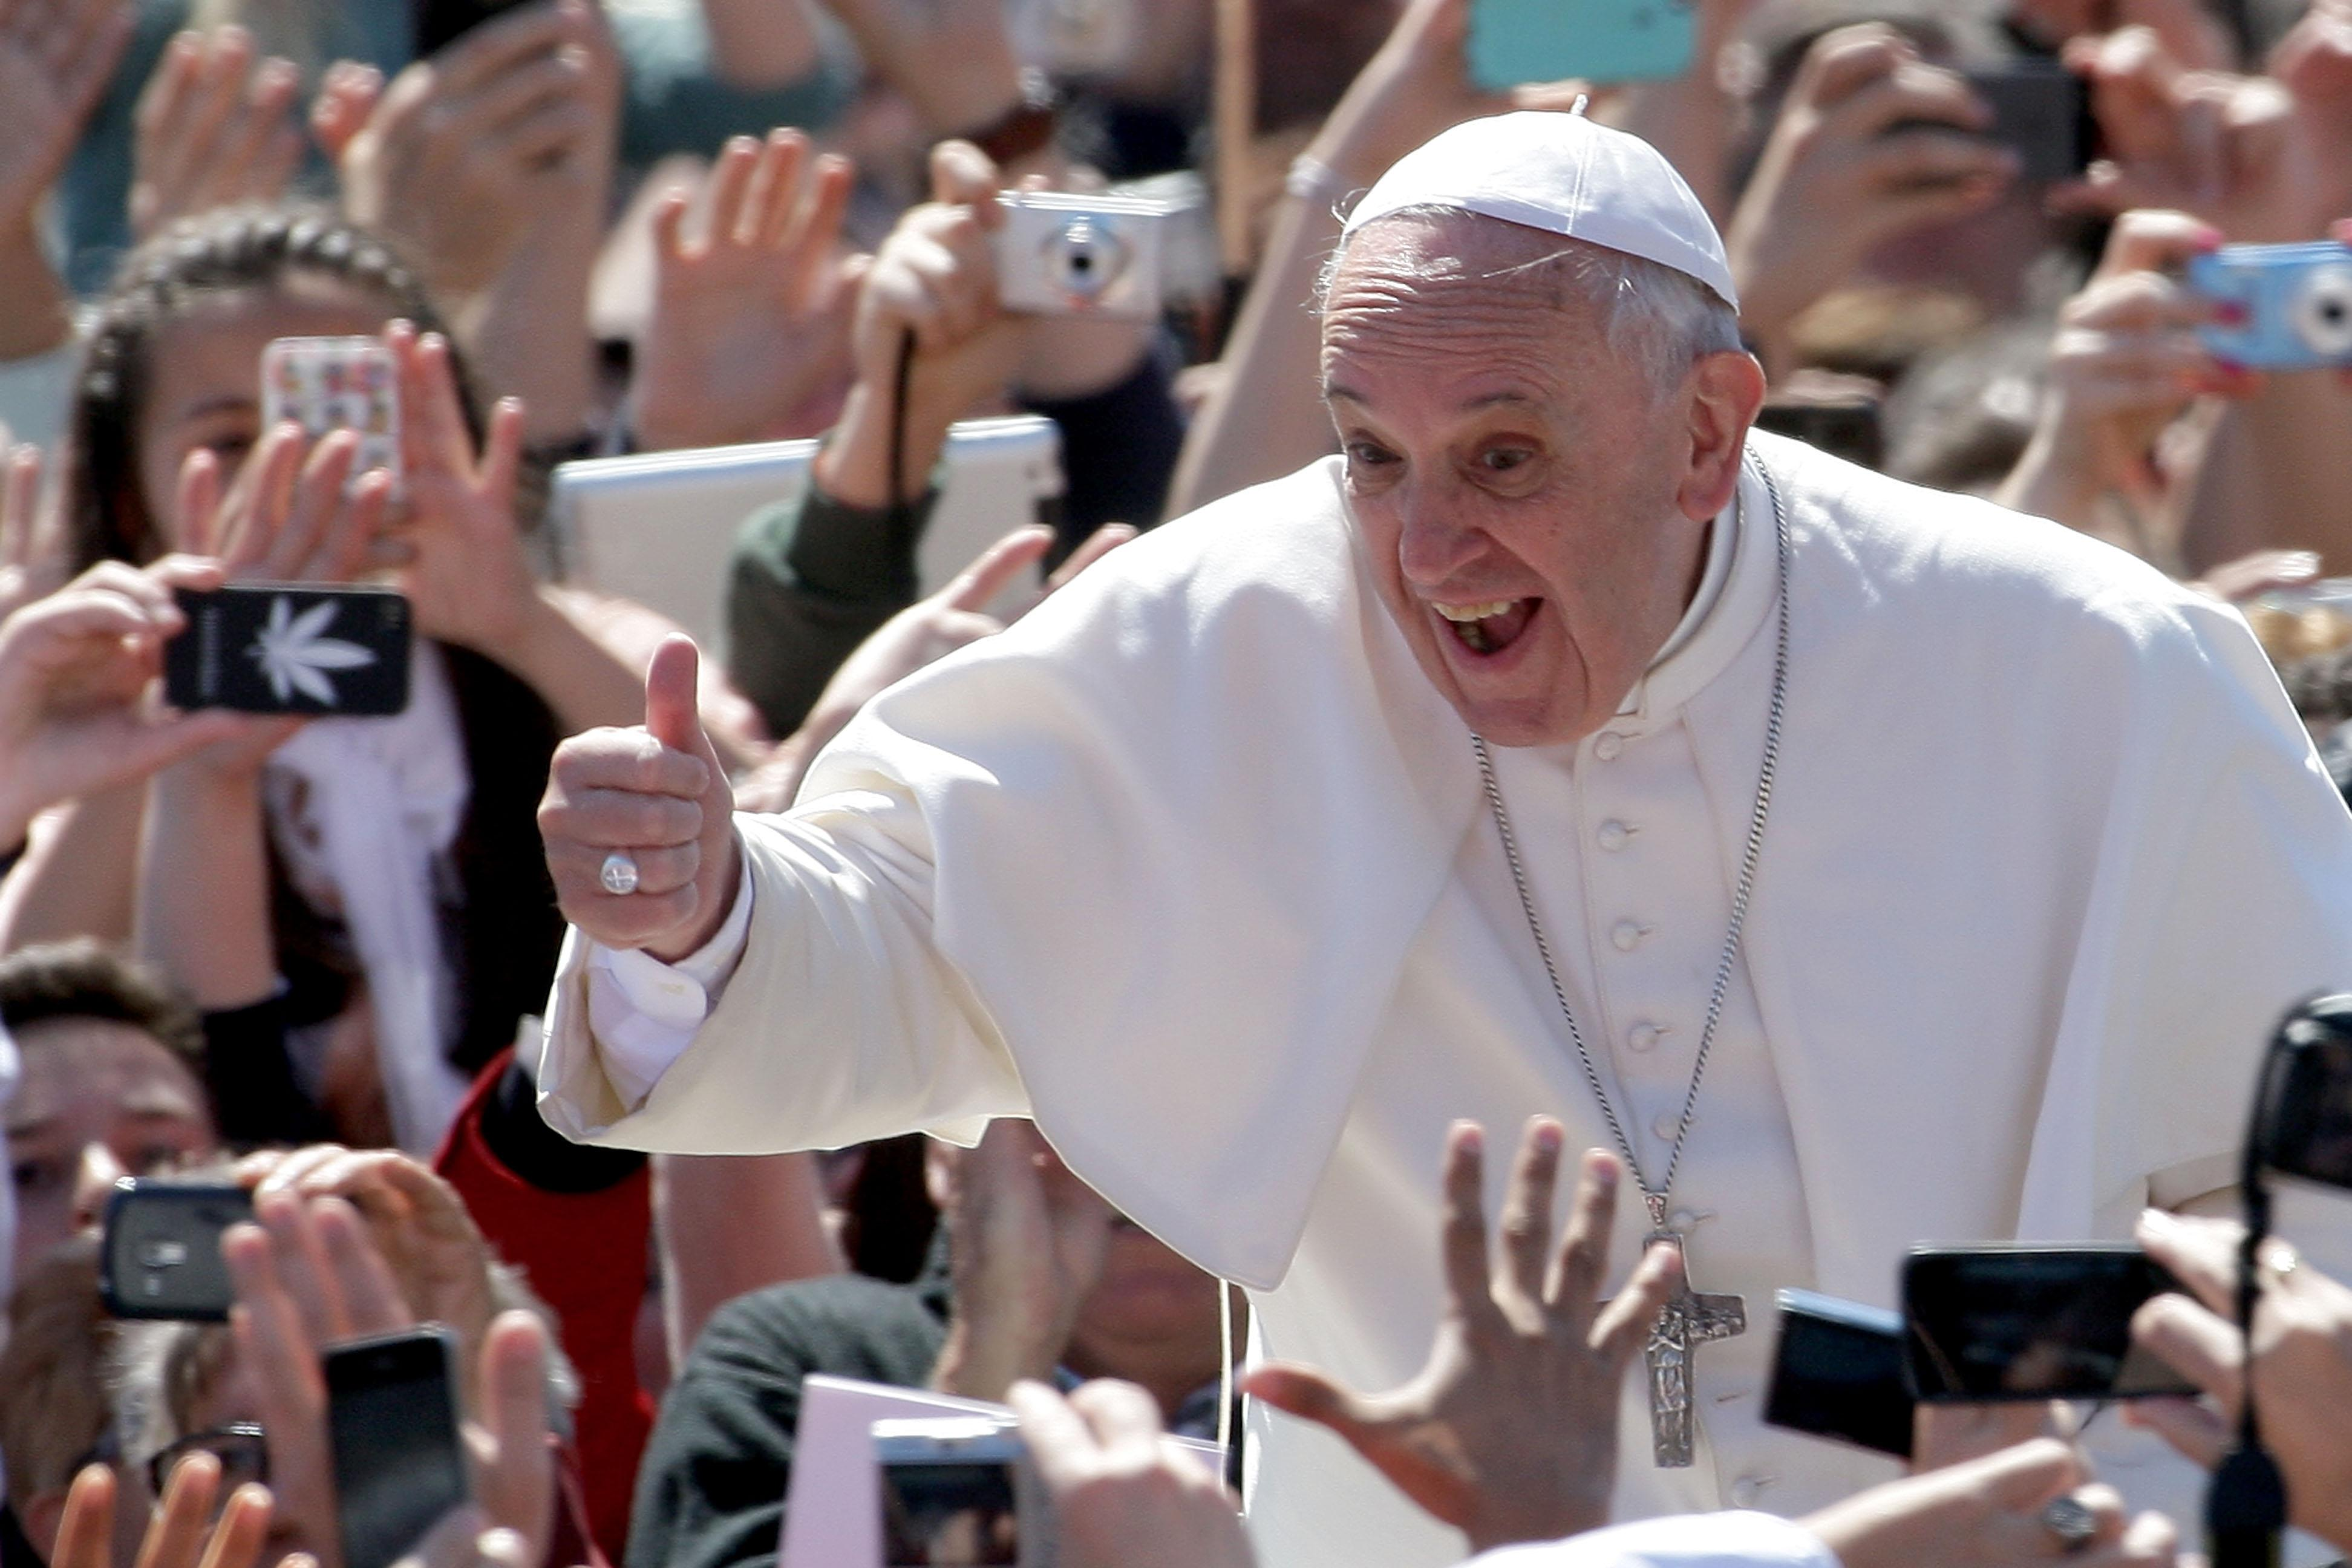 Watch: Young girl steals Pope's skullcap